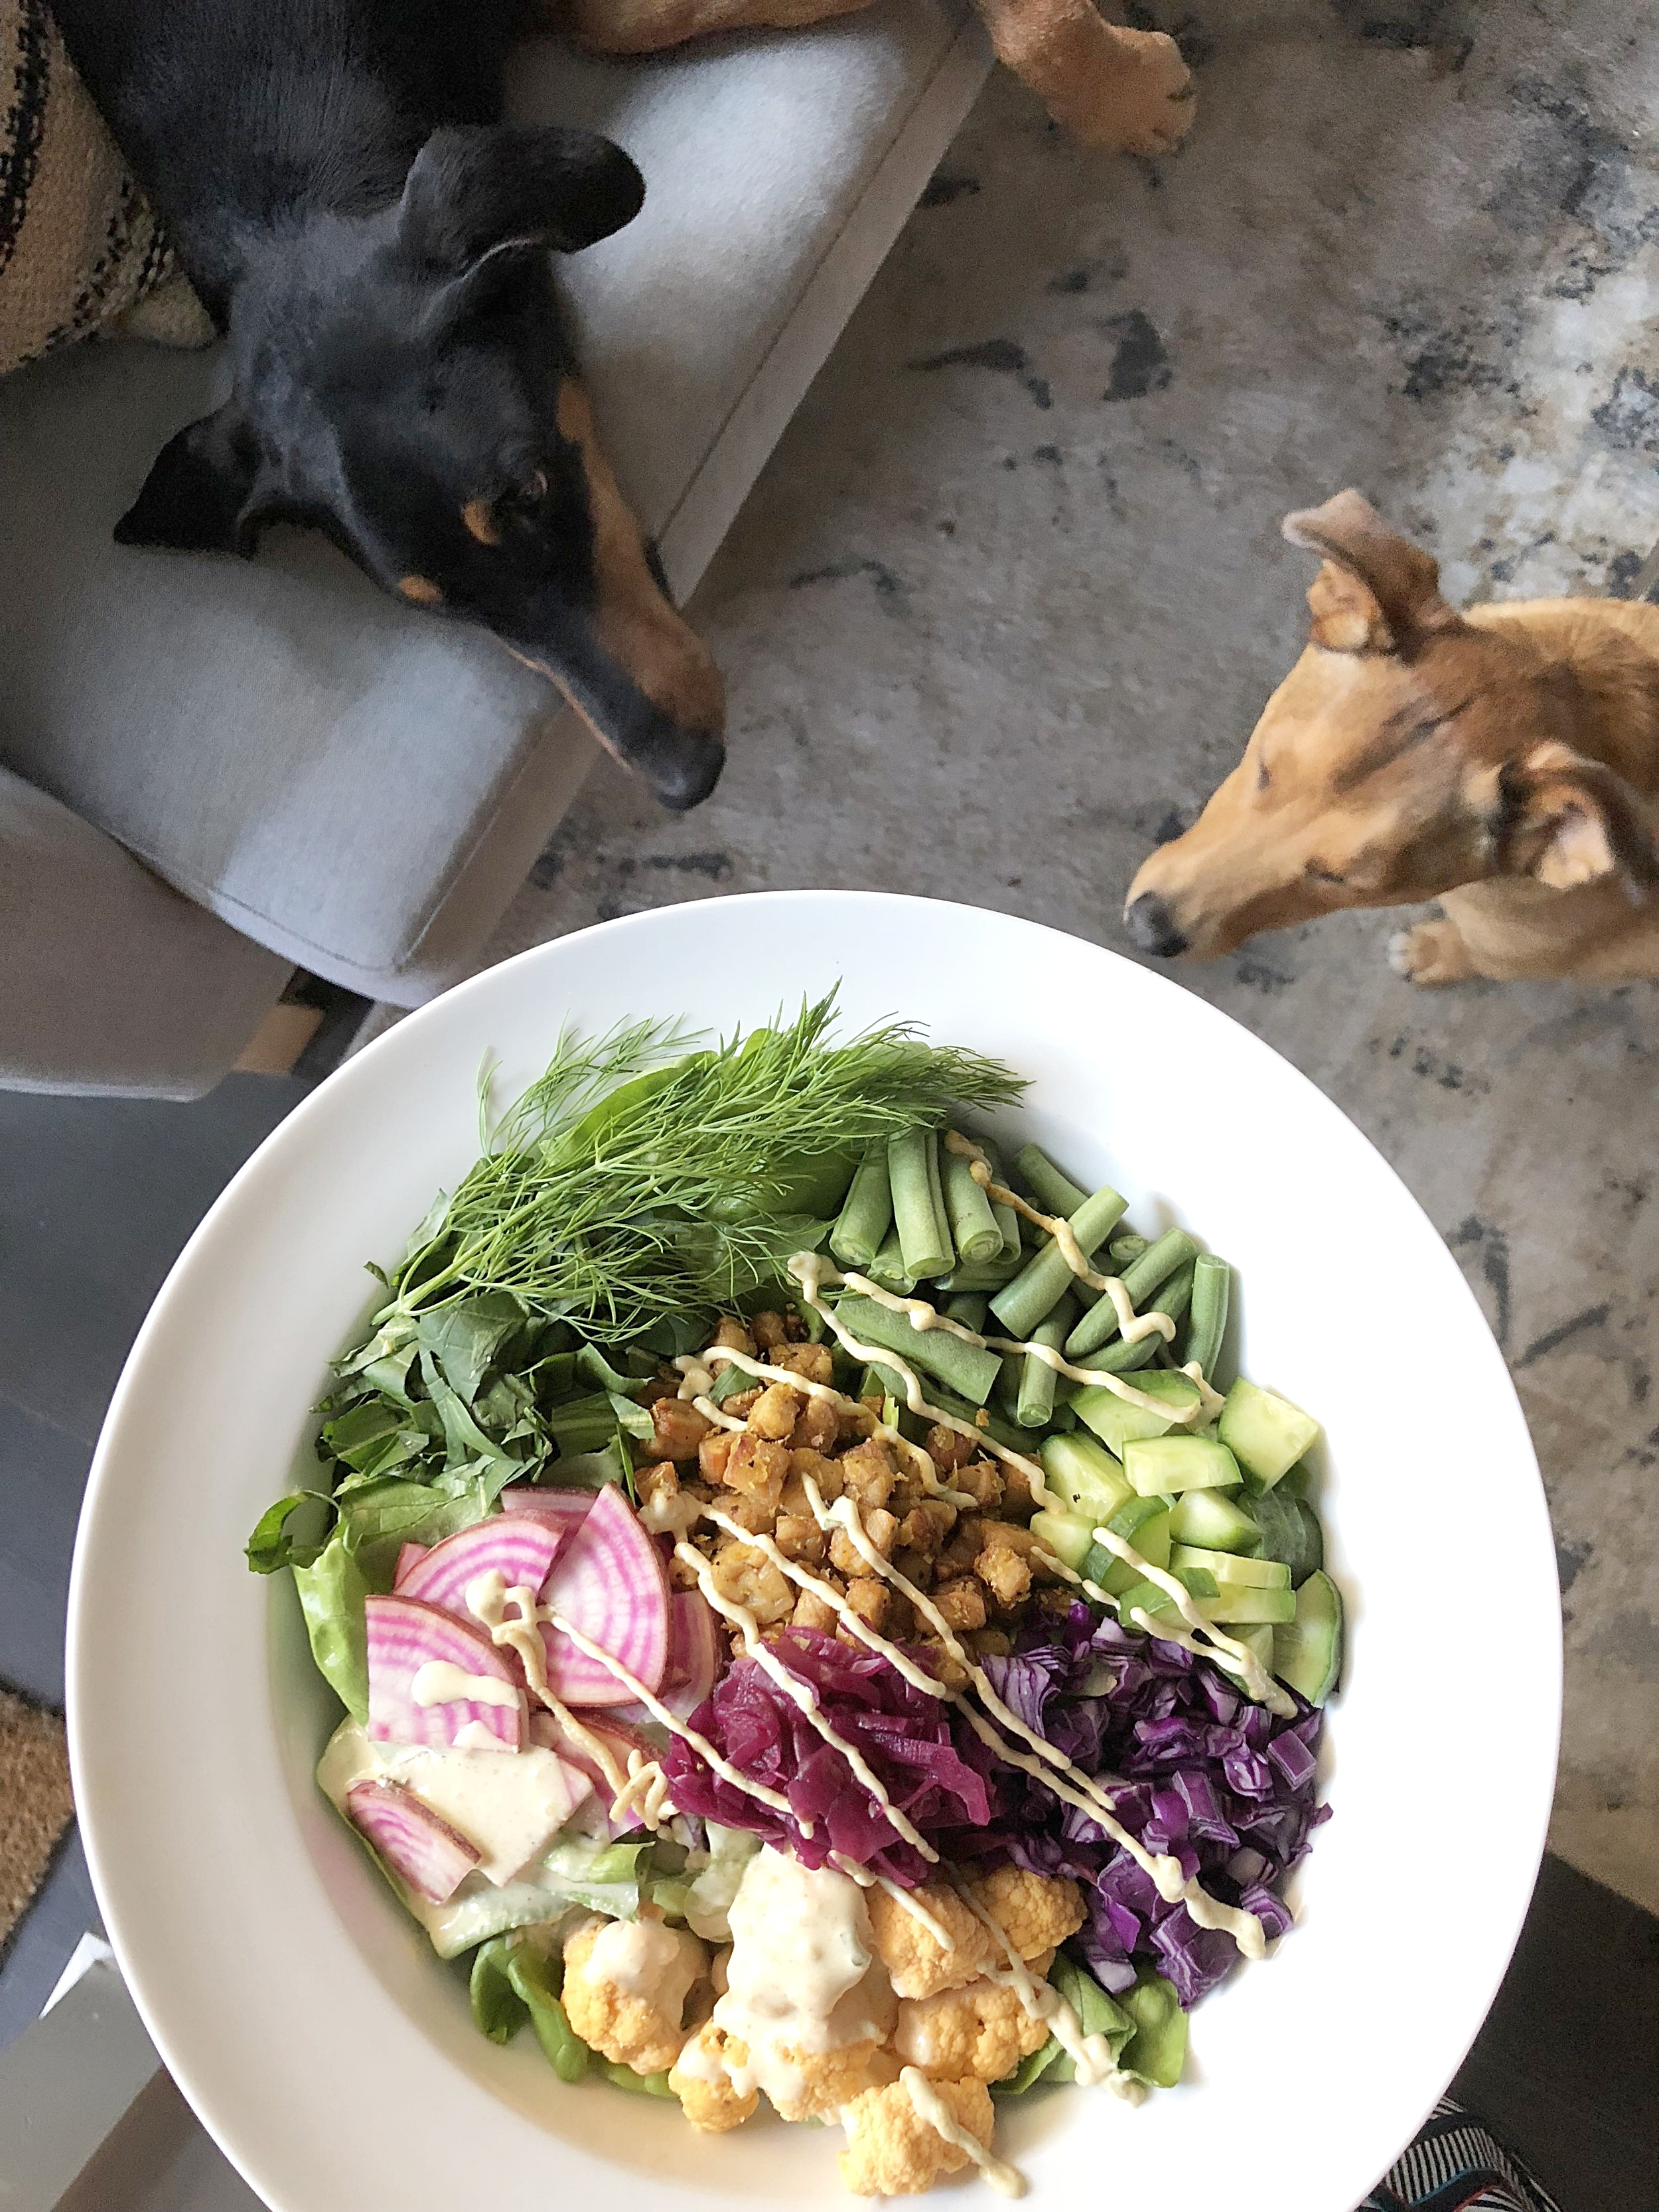 the dogs longing over my salad